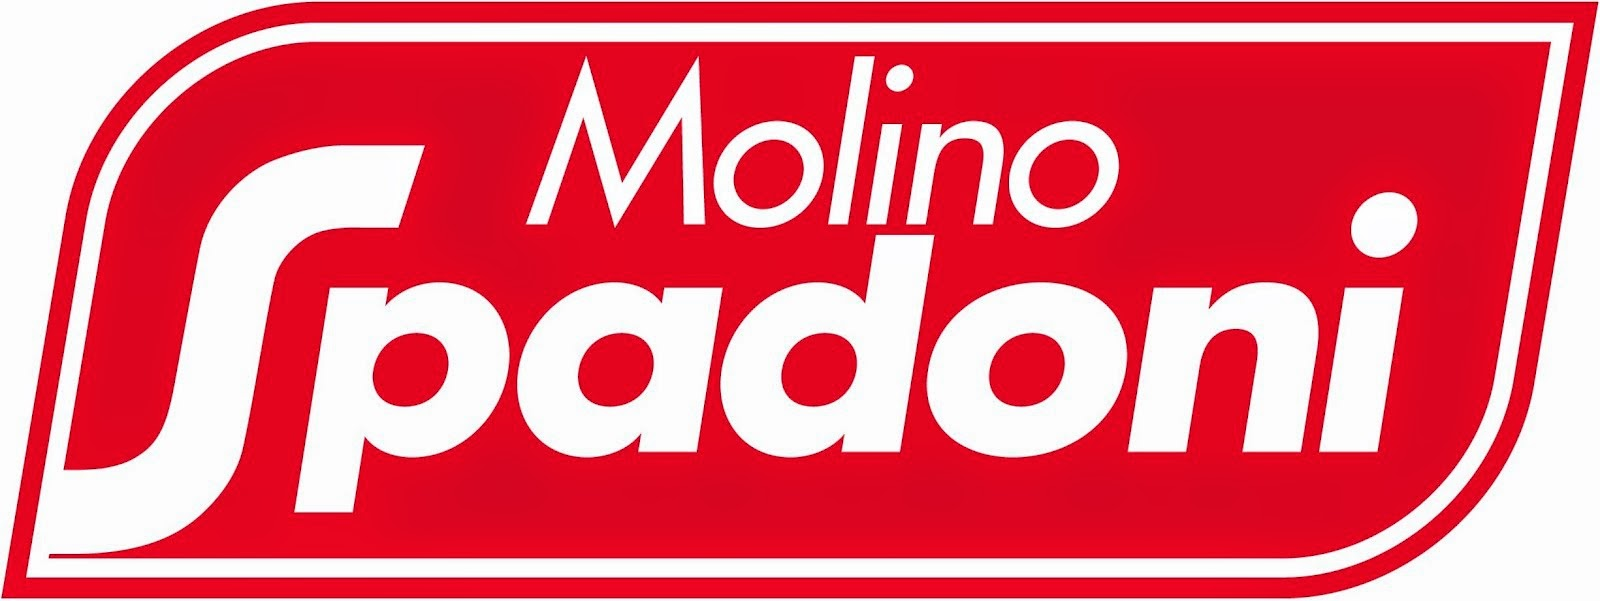 Molino Spadoni